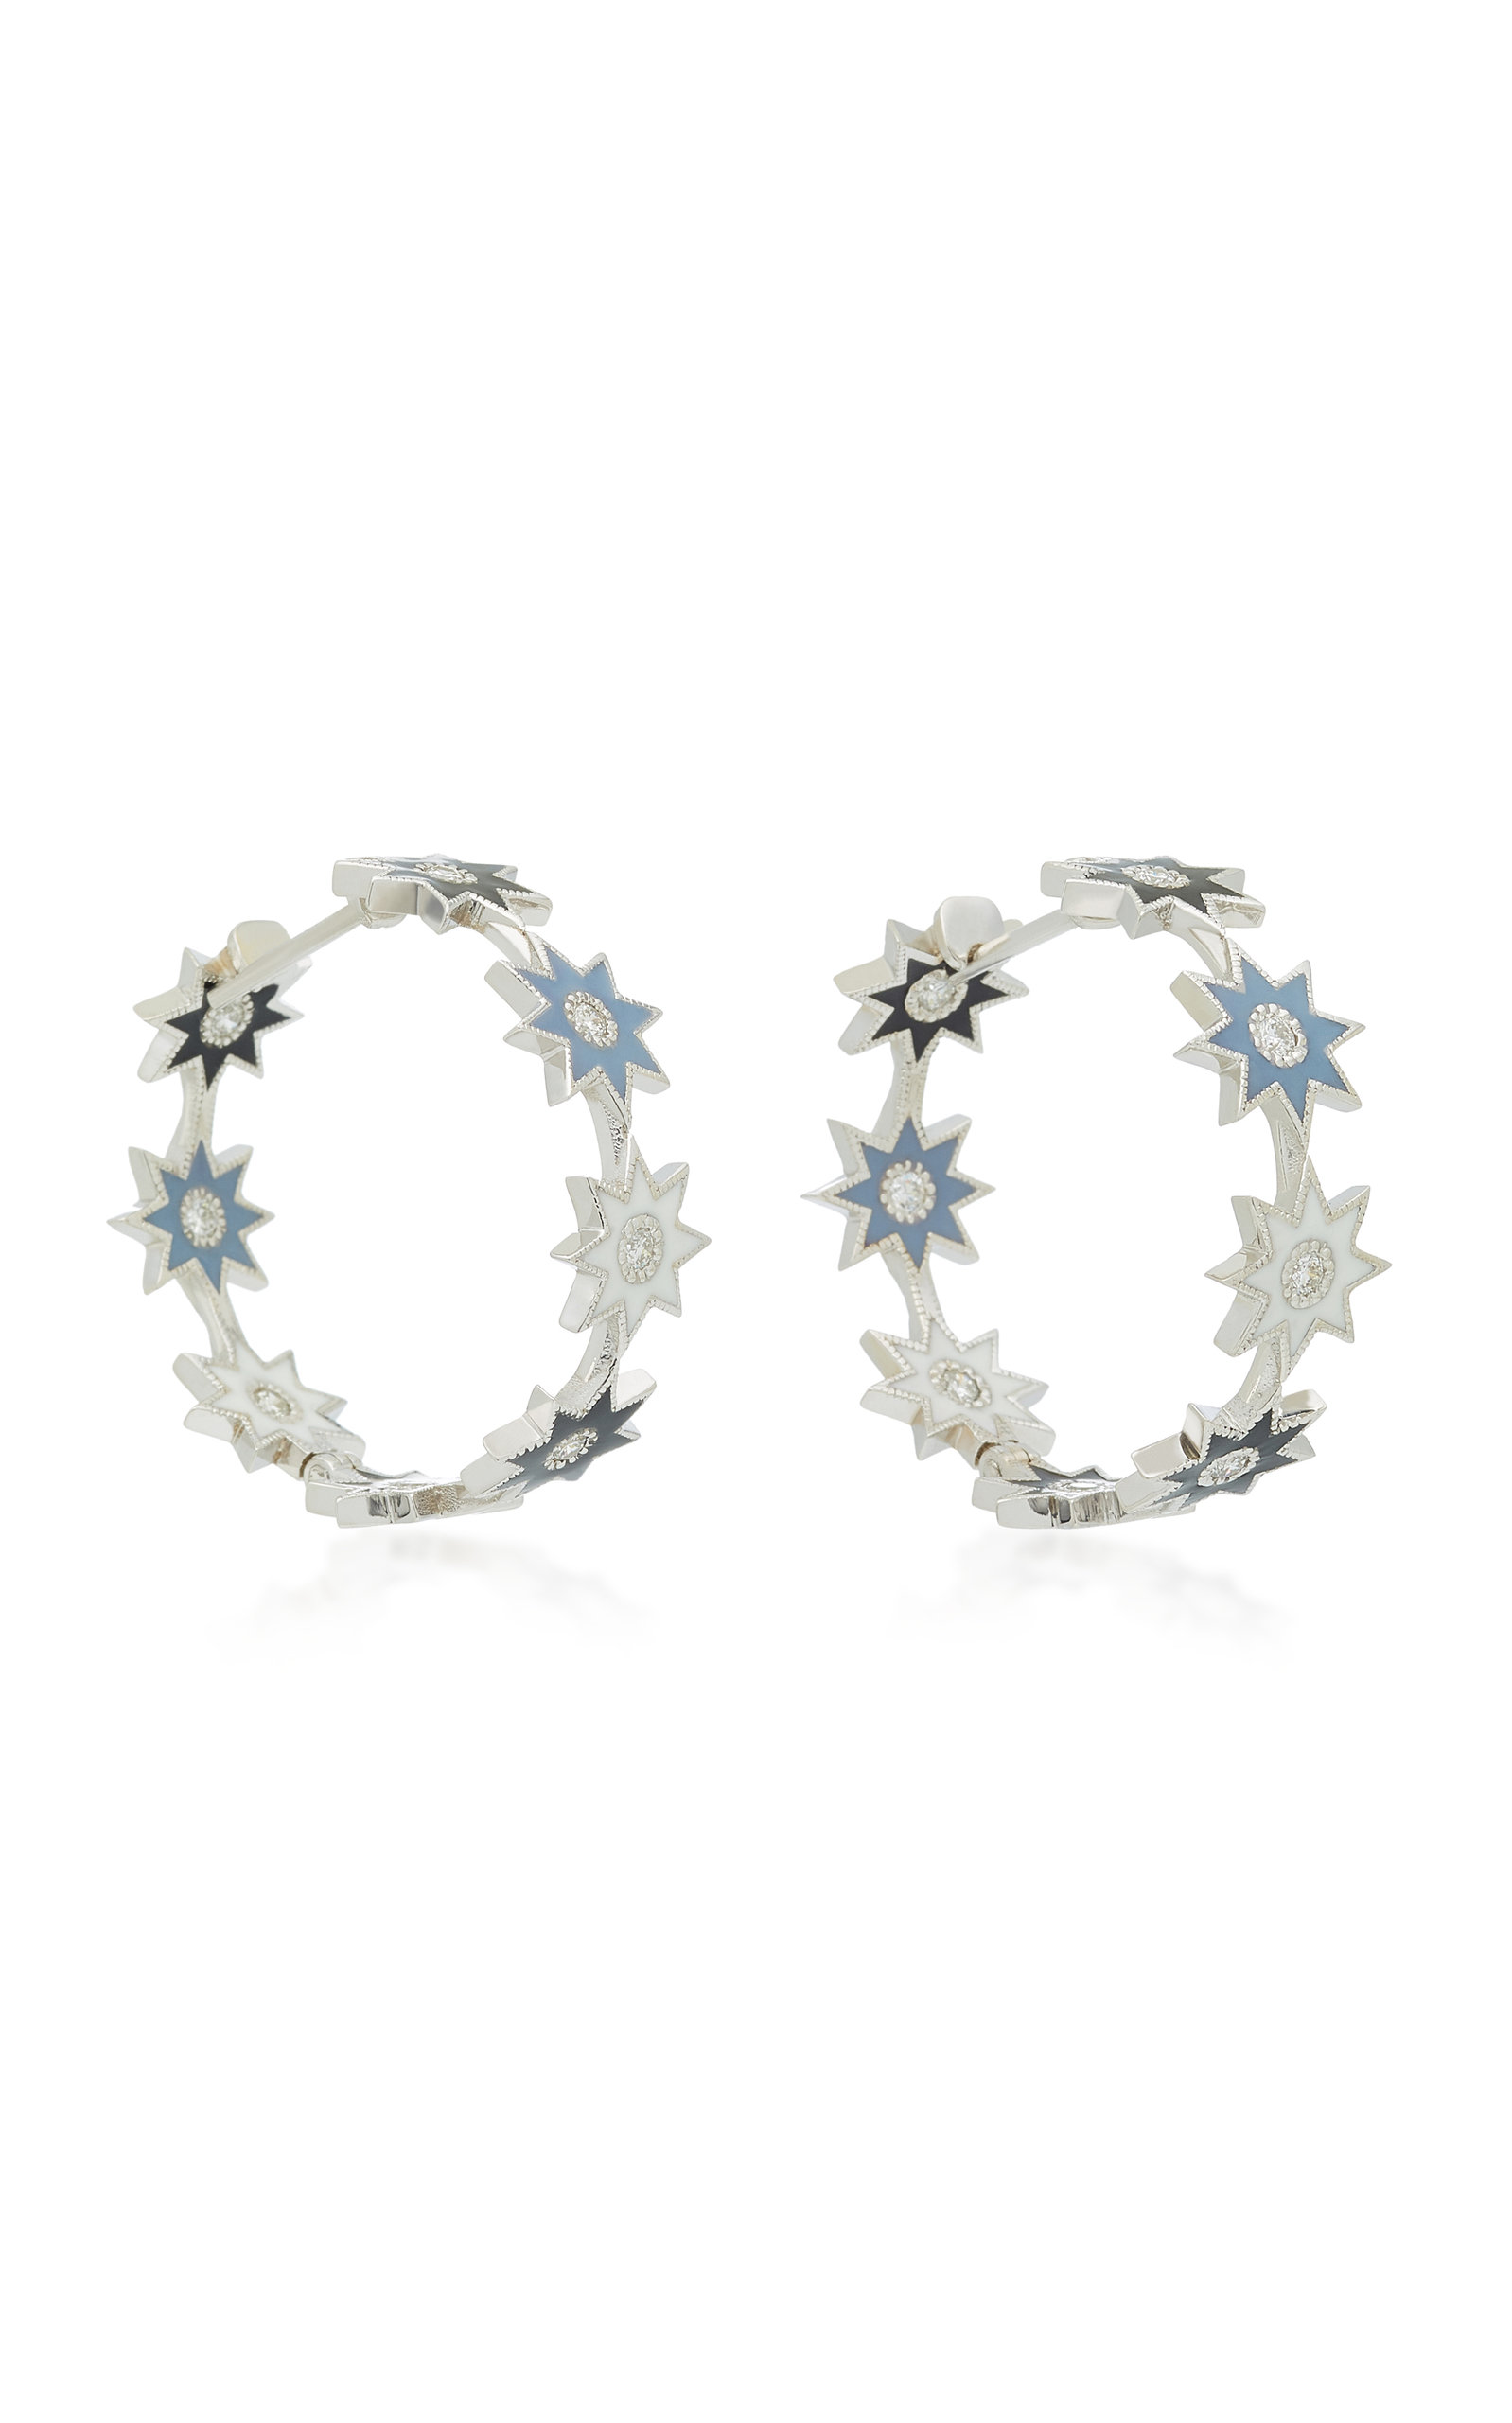 COLETTE JEWELRY 18K WHITE GOLD ENAMEL AND DIAMOND EARRINGS